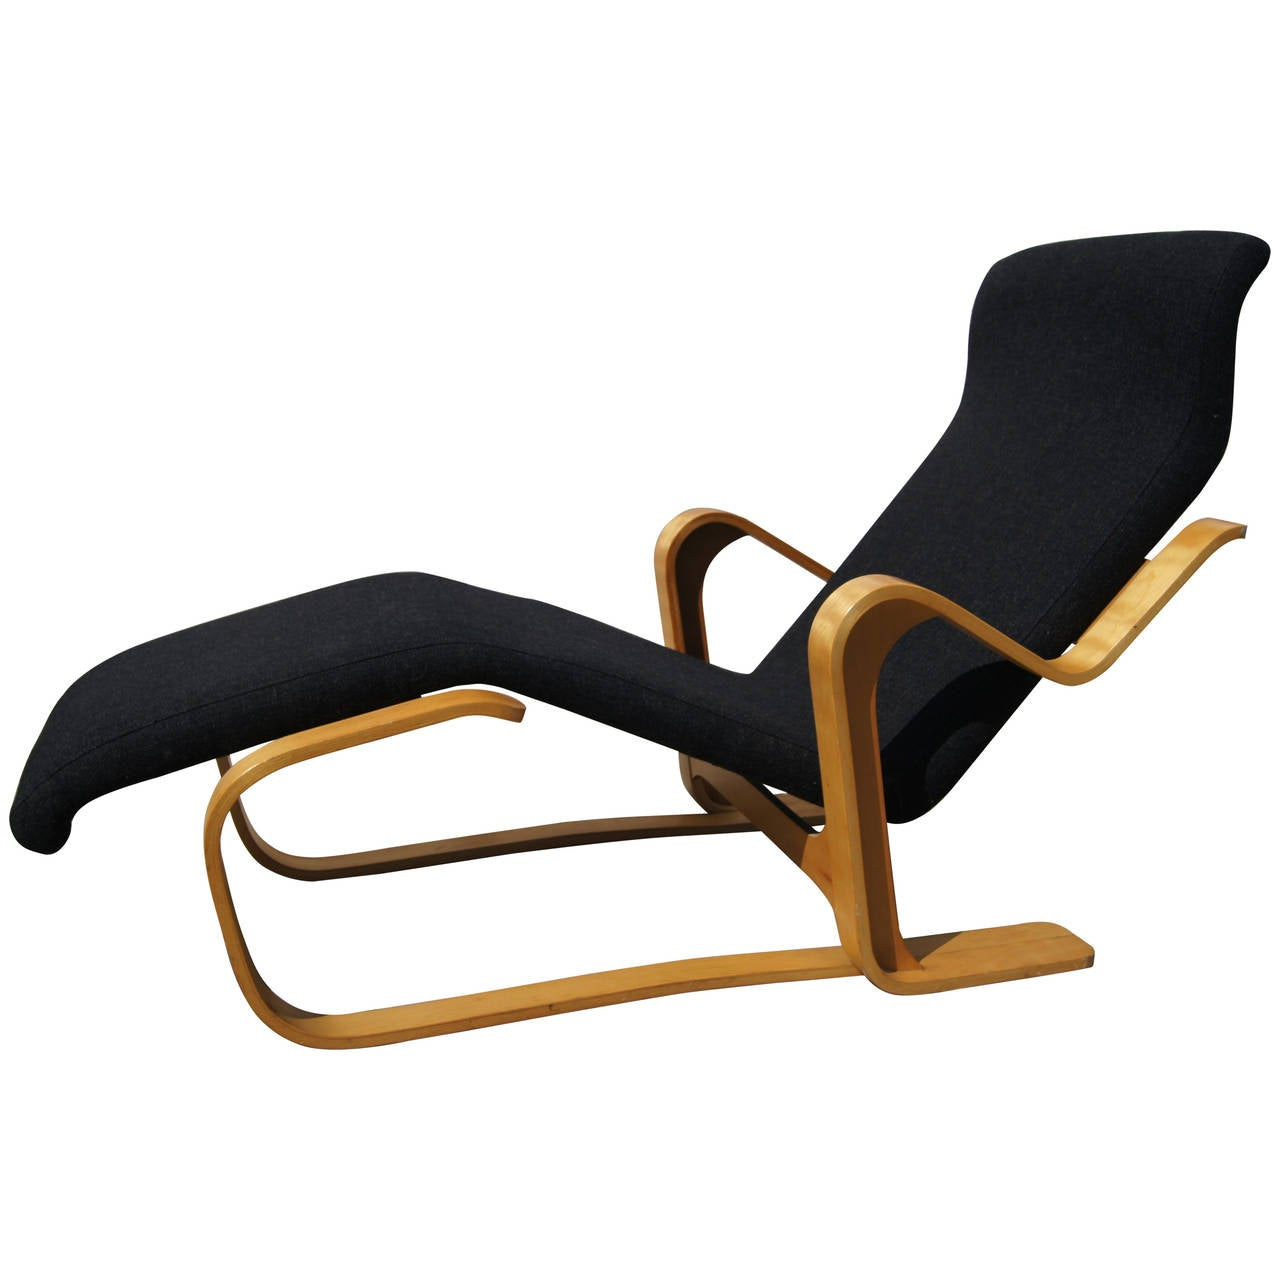 Chaise longue by marcel breuer for gavina for sale at 1stdibs for Chaise longue furniture